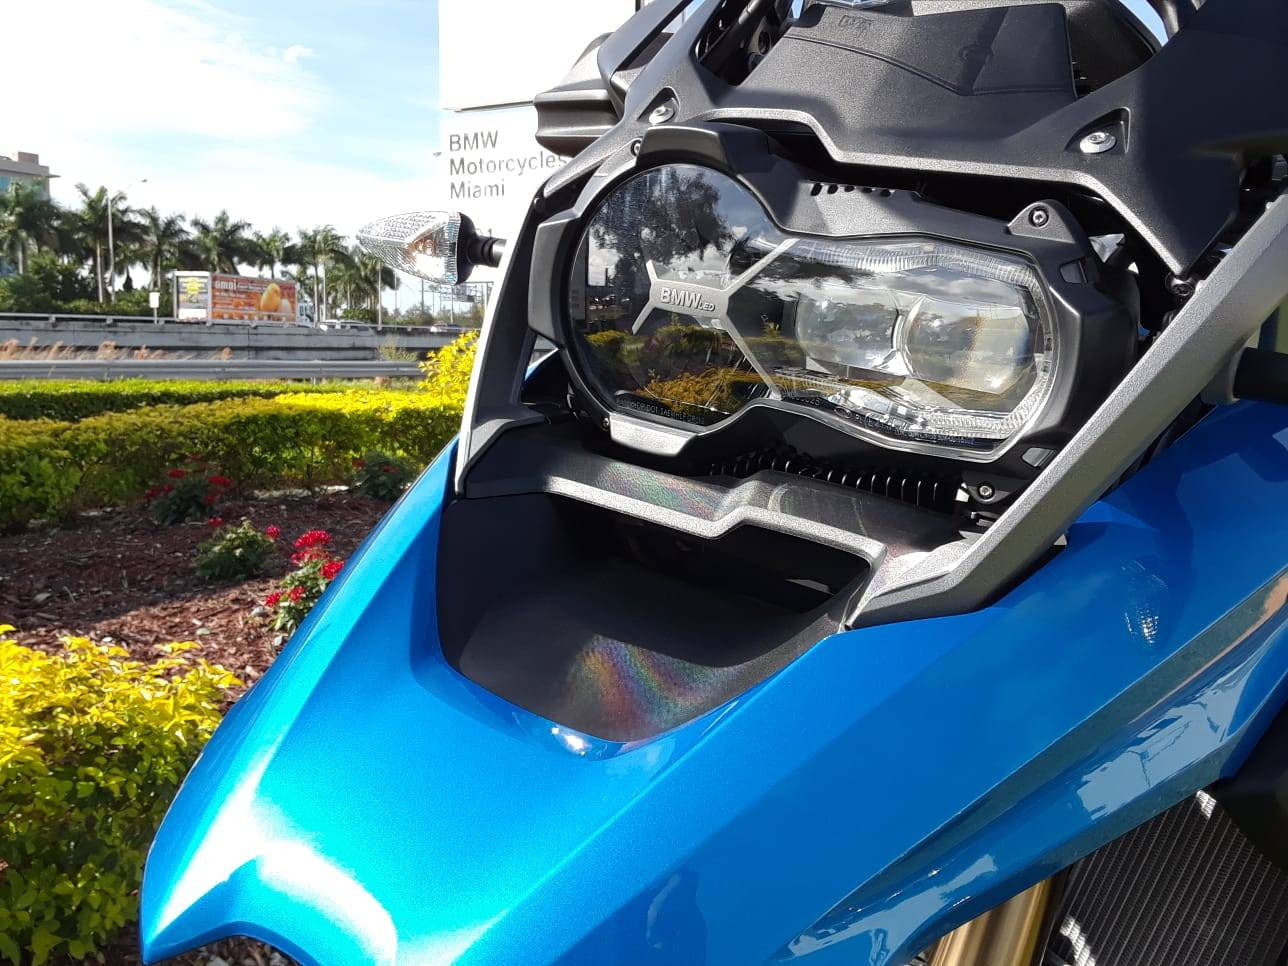 New 2019 BMW R 1250 GS for sale, New BMW R 1250GS, BMW R1250GS for sale, 1250GS, R1250GS, BMW Motorcycles of Miami, Motorcycles of Miami. Motorcycles Miami - Photo 33